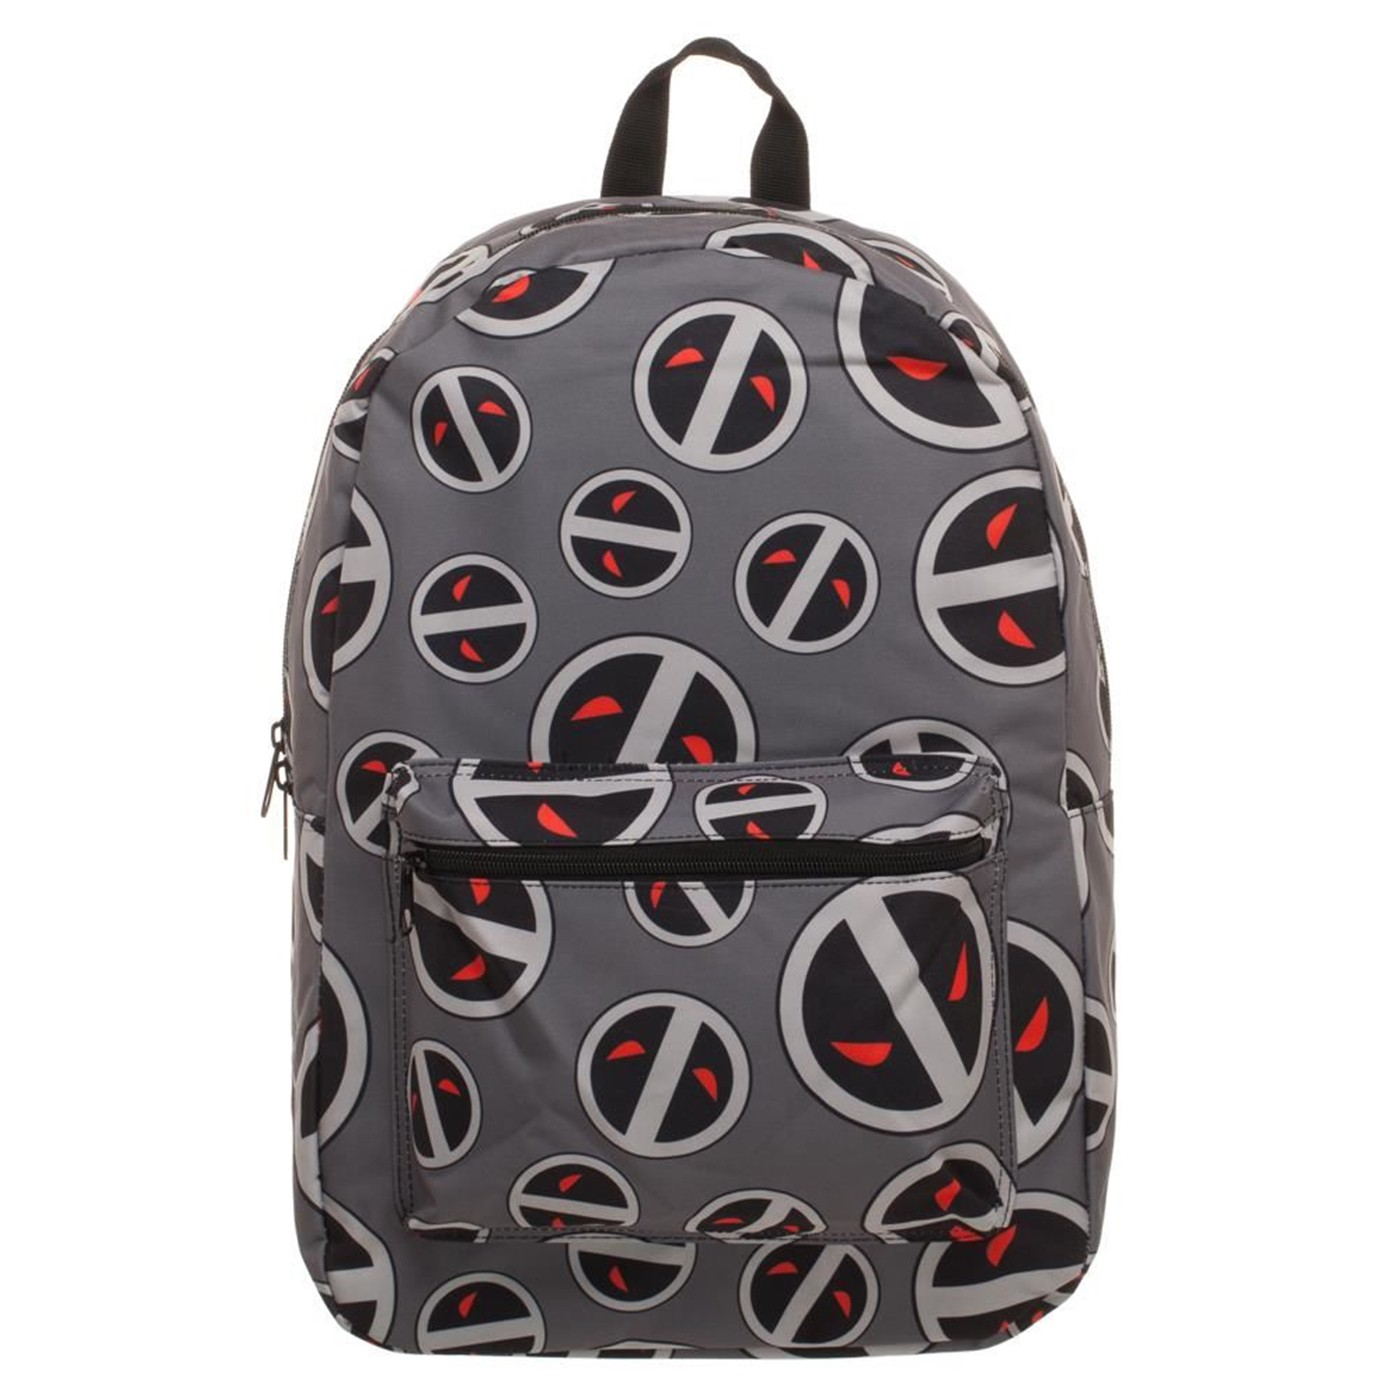 Deadpool Task Force X Backpack